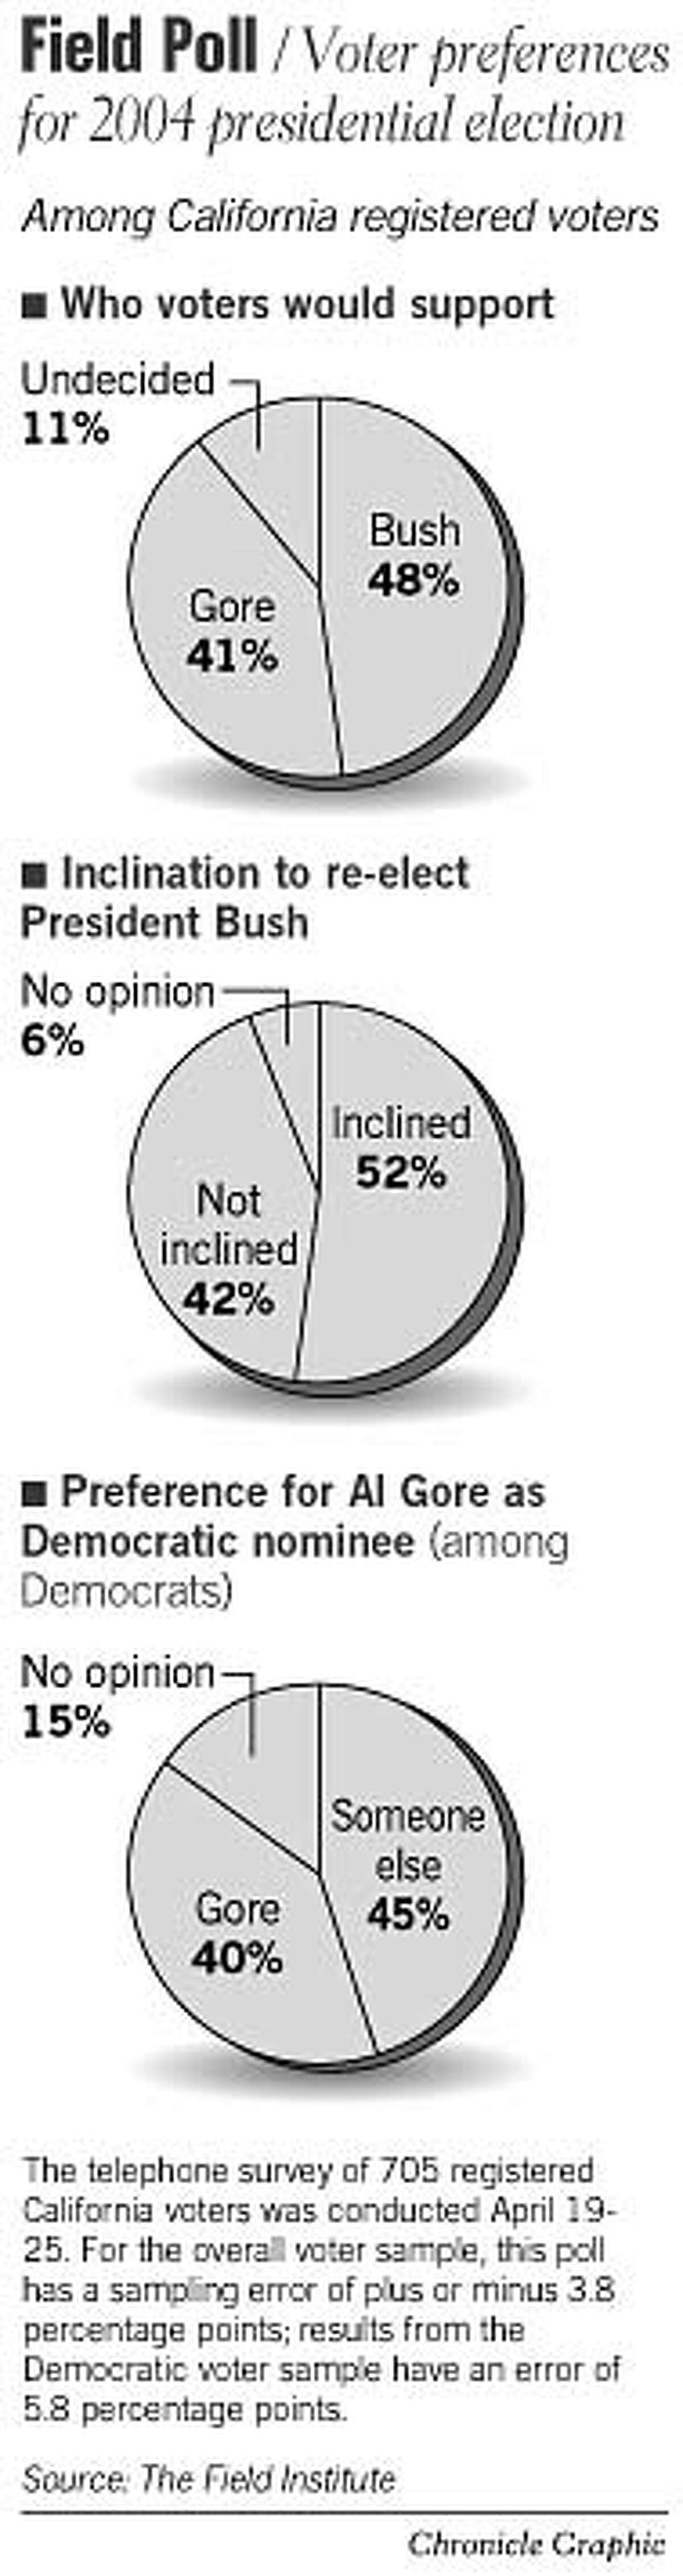 Field Poll: Voter Preferences For 2004 Presidential Election. Chronicle Graphic